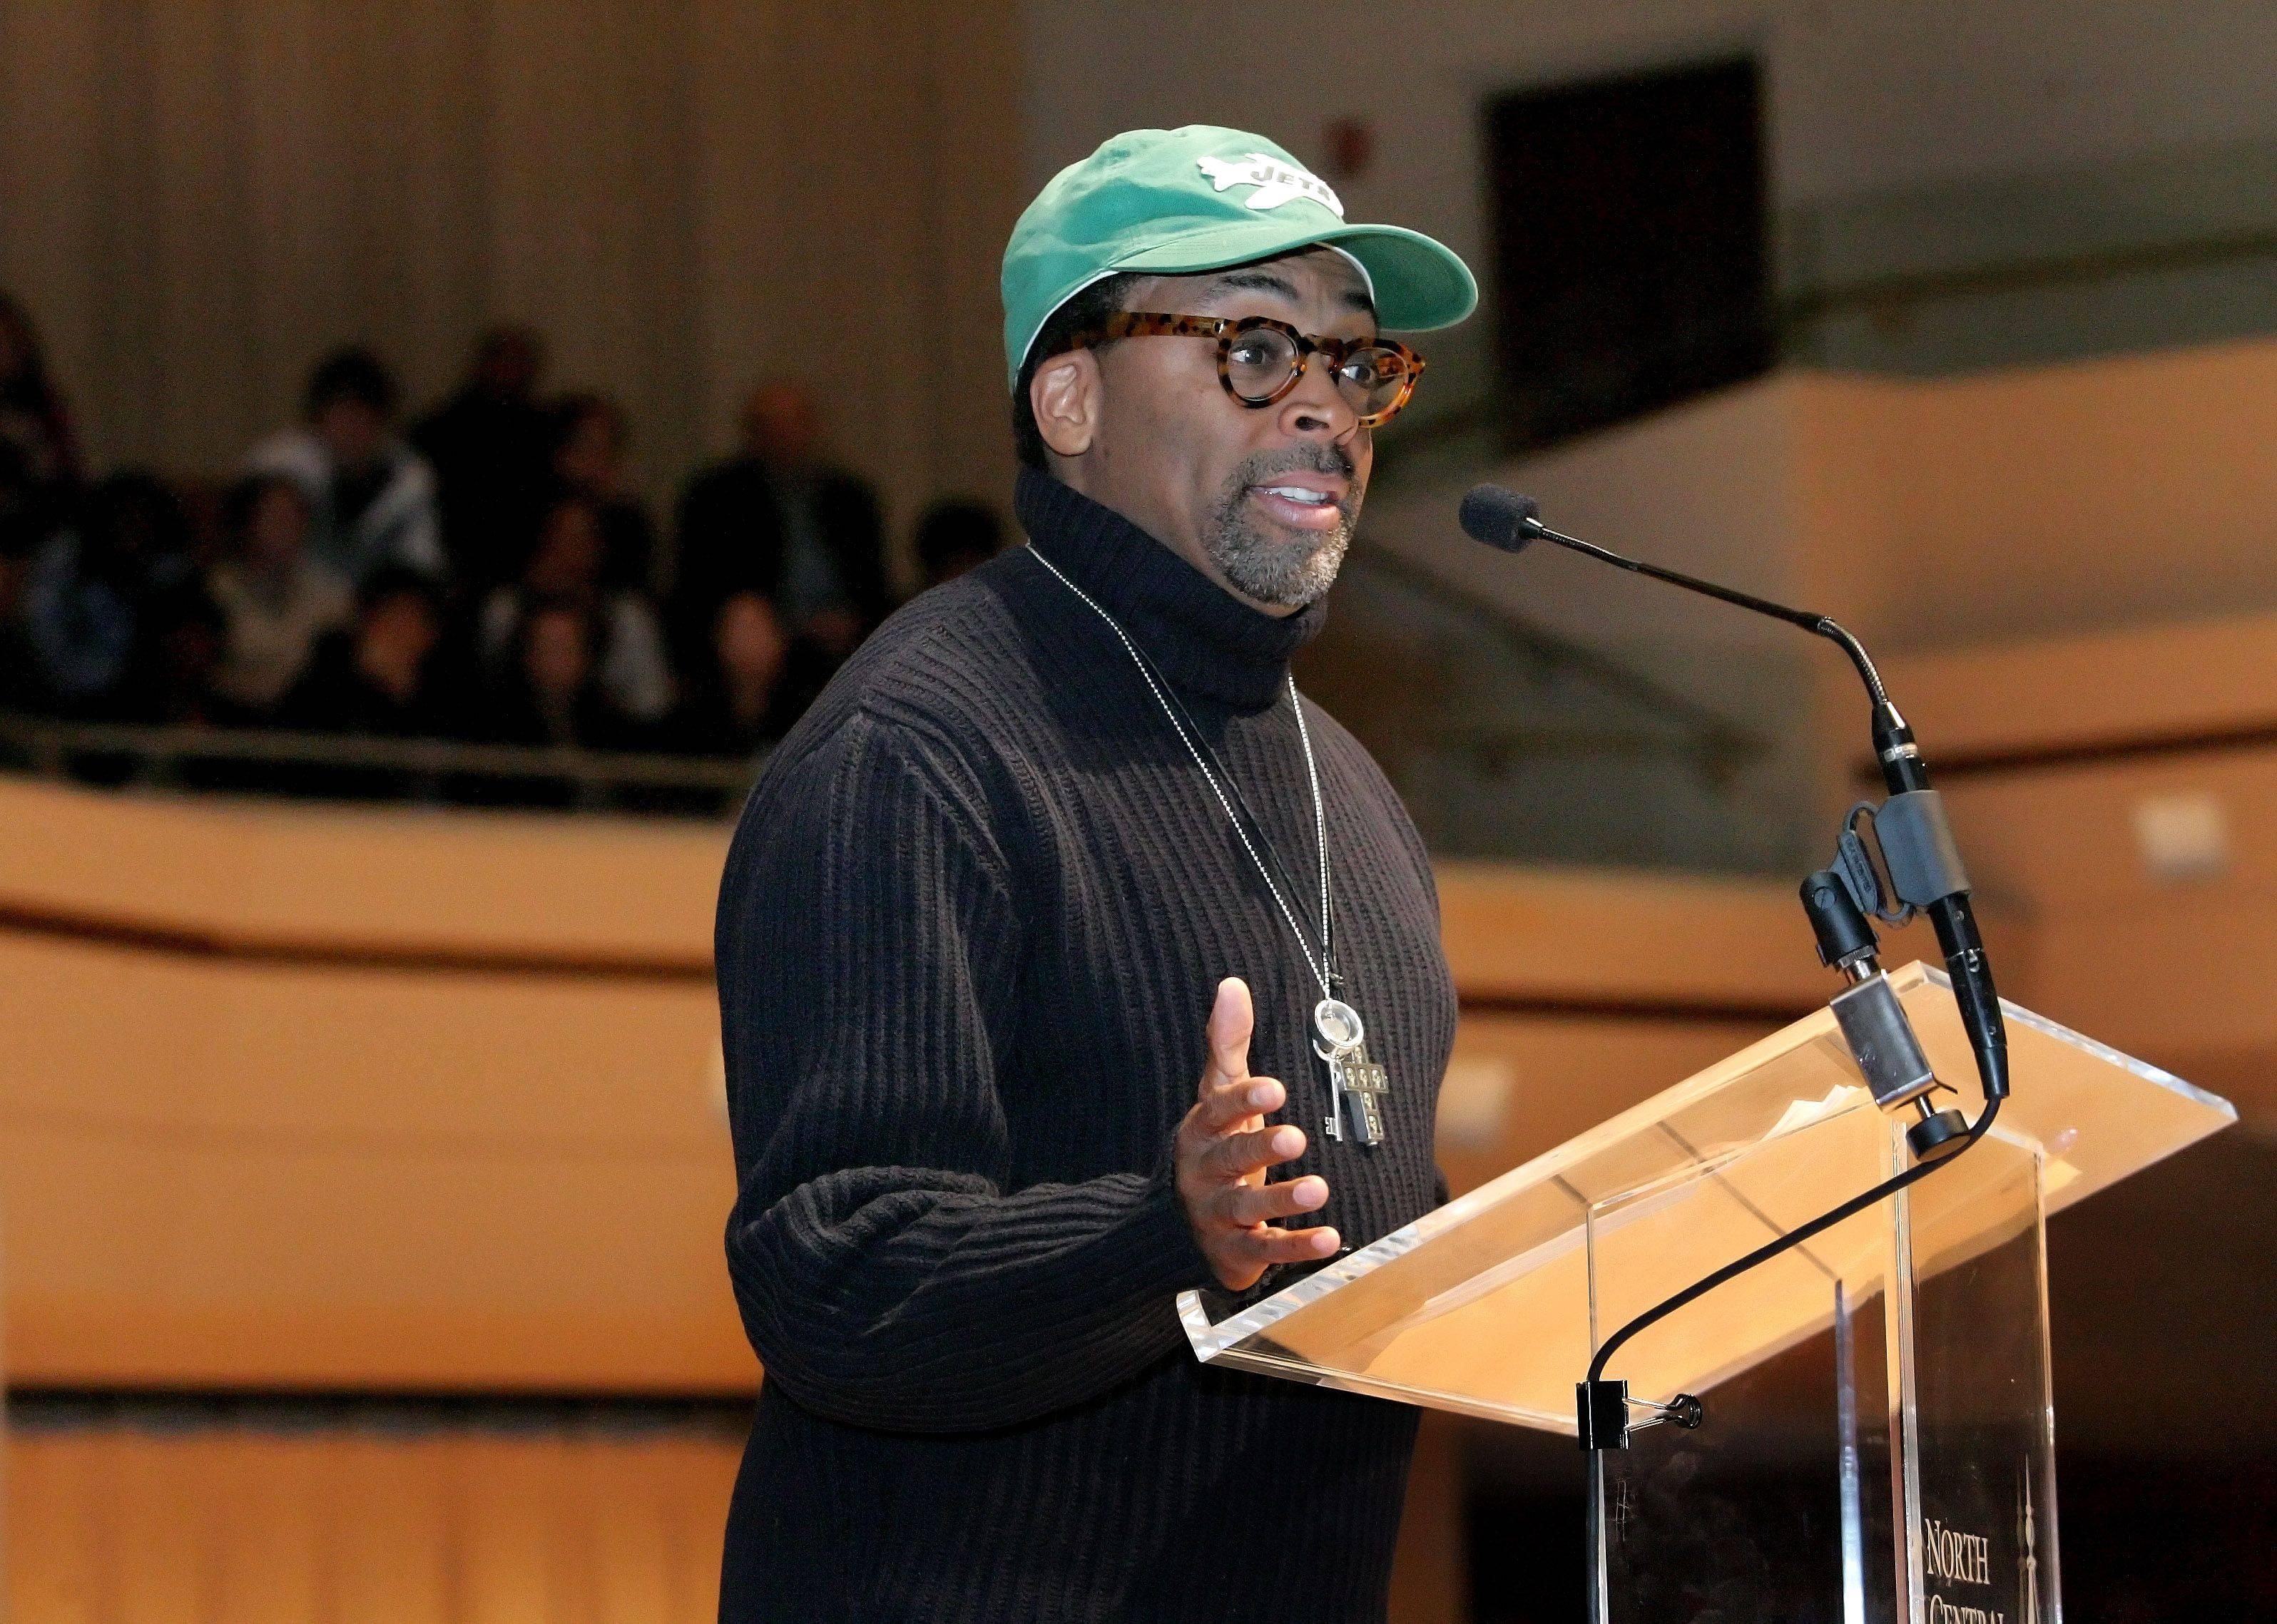 Film director Spike Lee was Tuesday's keynote speaker at Wentz Concert Hall in Naperville for the weeklong celebration of Dr. Martin Luther King at North Central College.